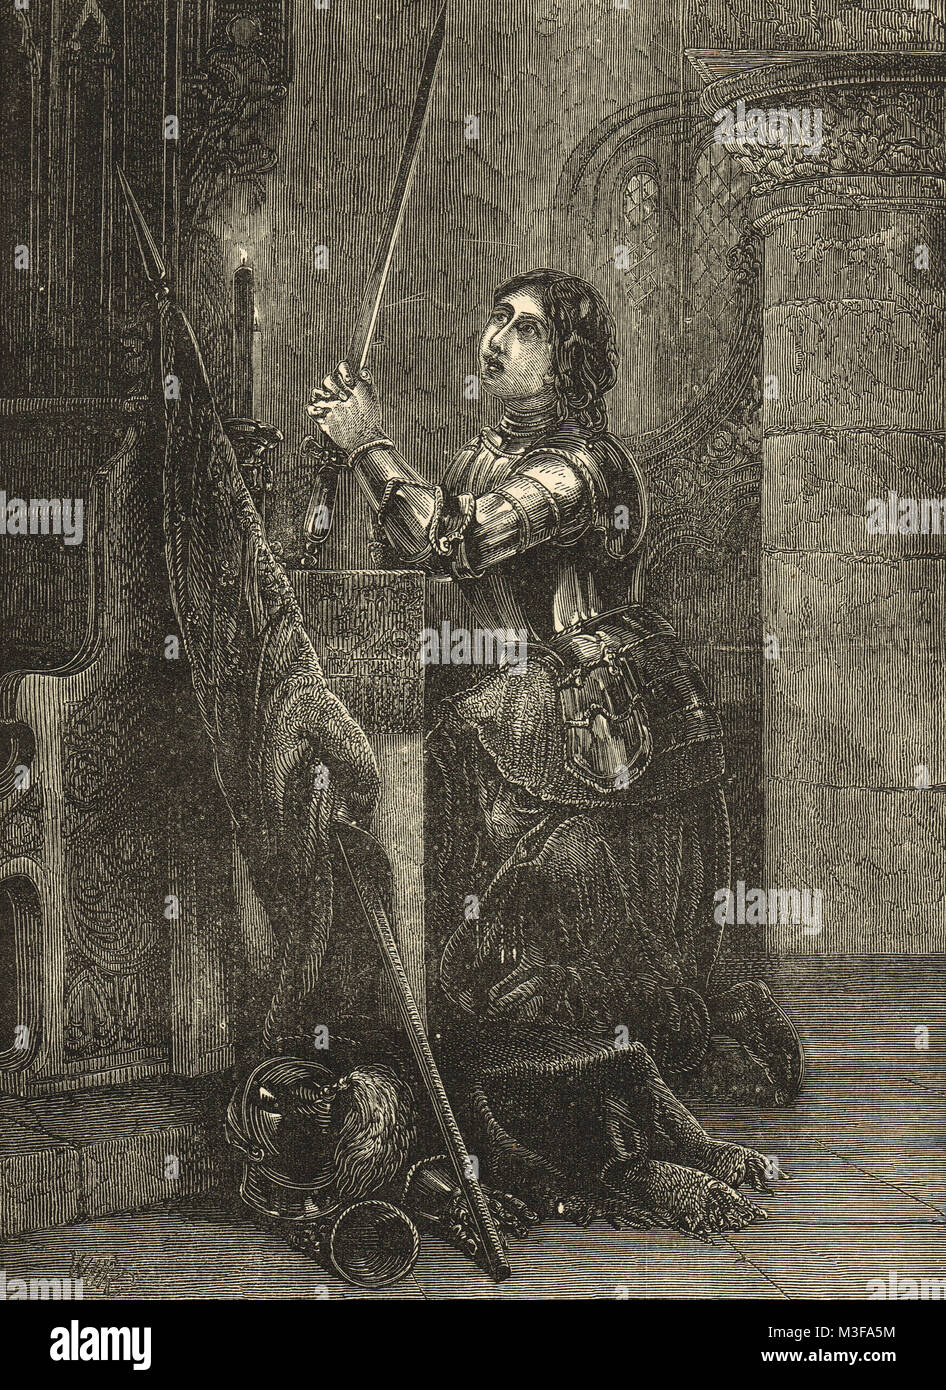 Joan of Arc in armour knelt in prayer - Stock Image